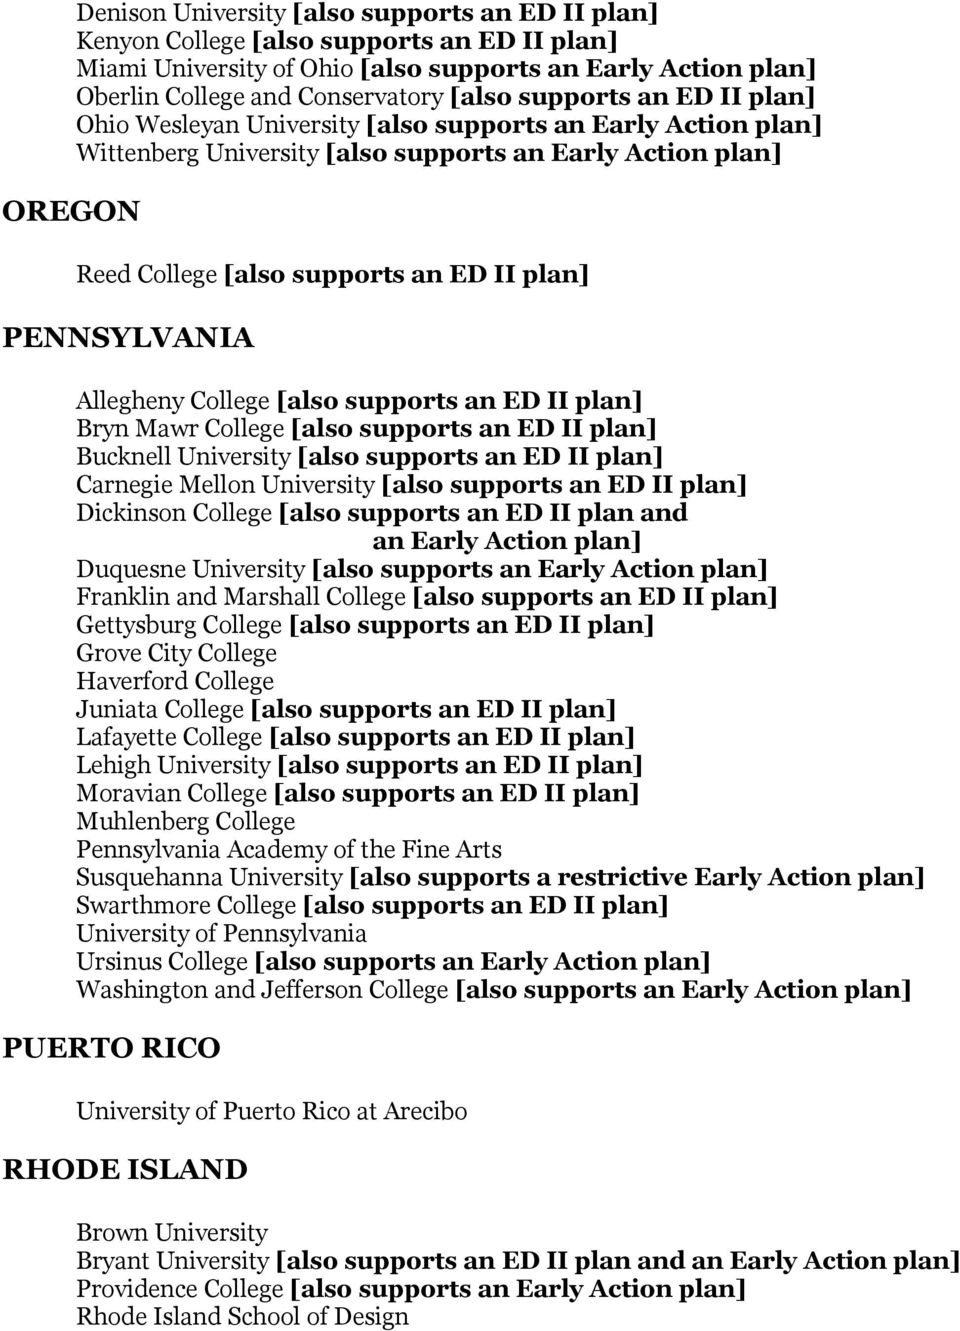 PENNSYLVANIA Allegheny College [also supports an ED II plan] Bryn Mawr College [also supports an ED II plan] Bucknell University [also supports an ED II plan] Carnegie Mellon University [also